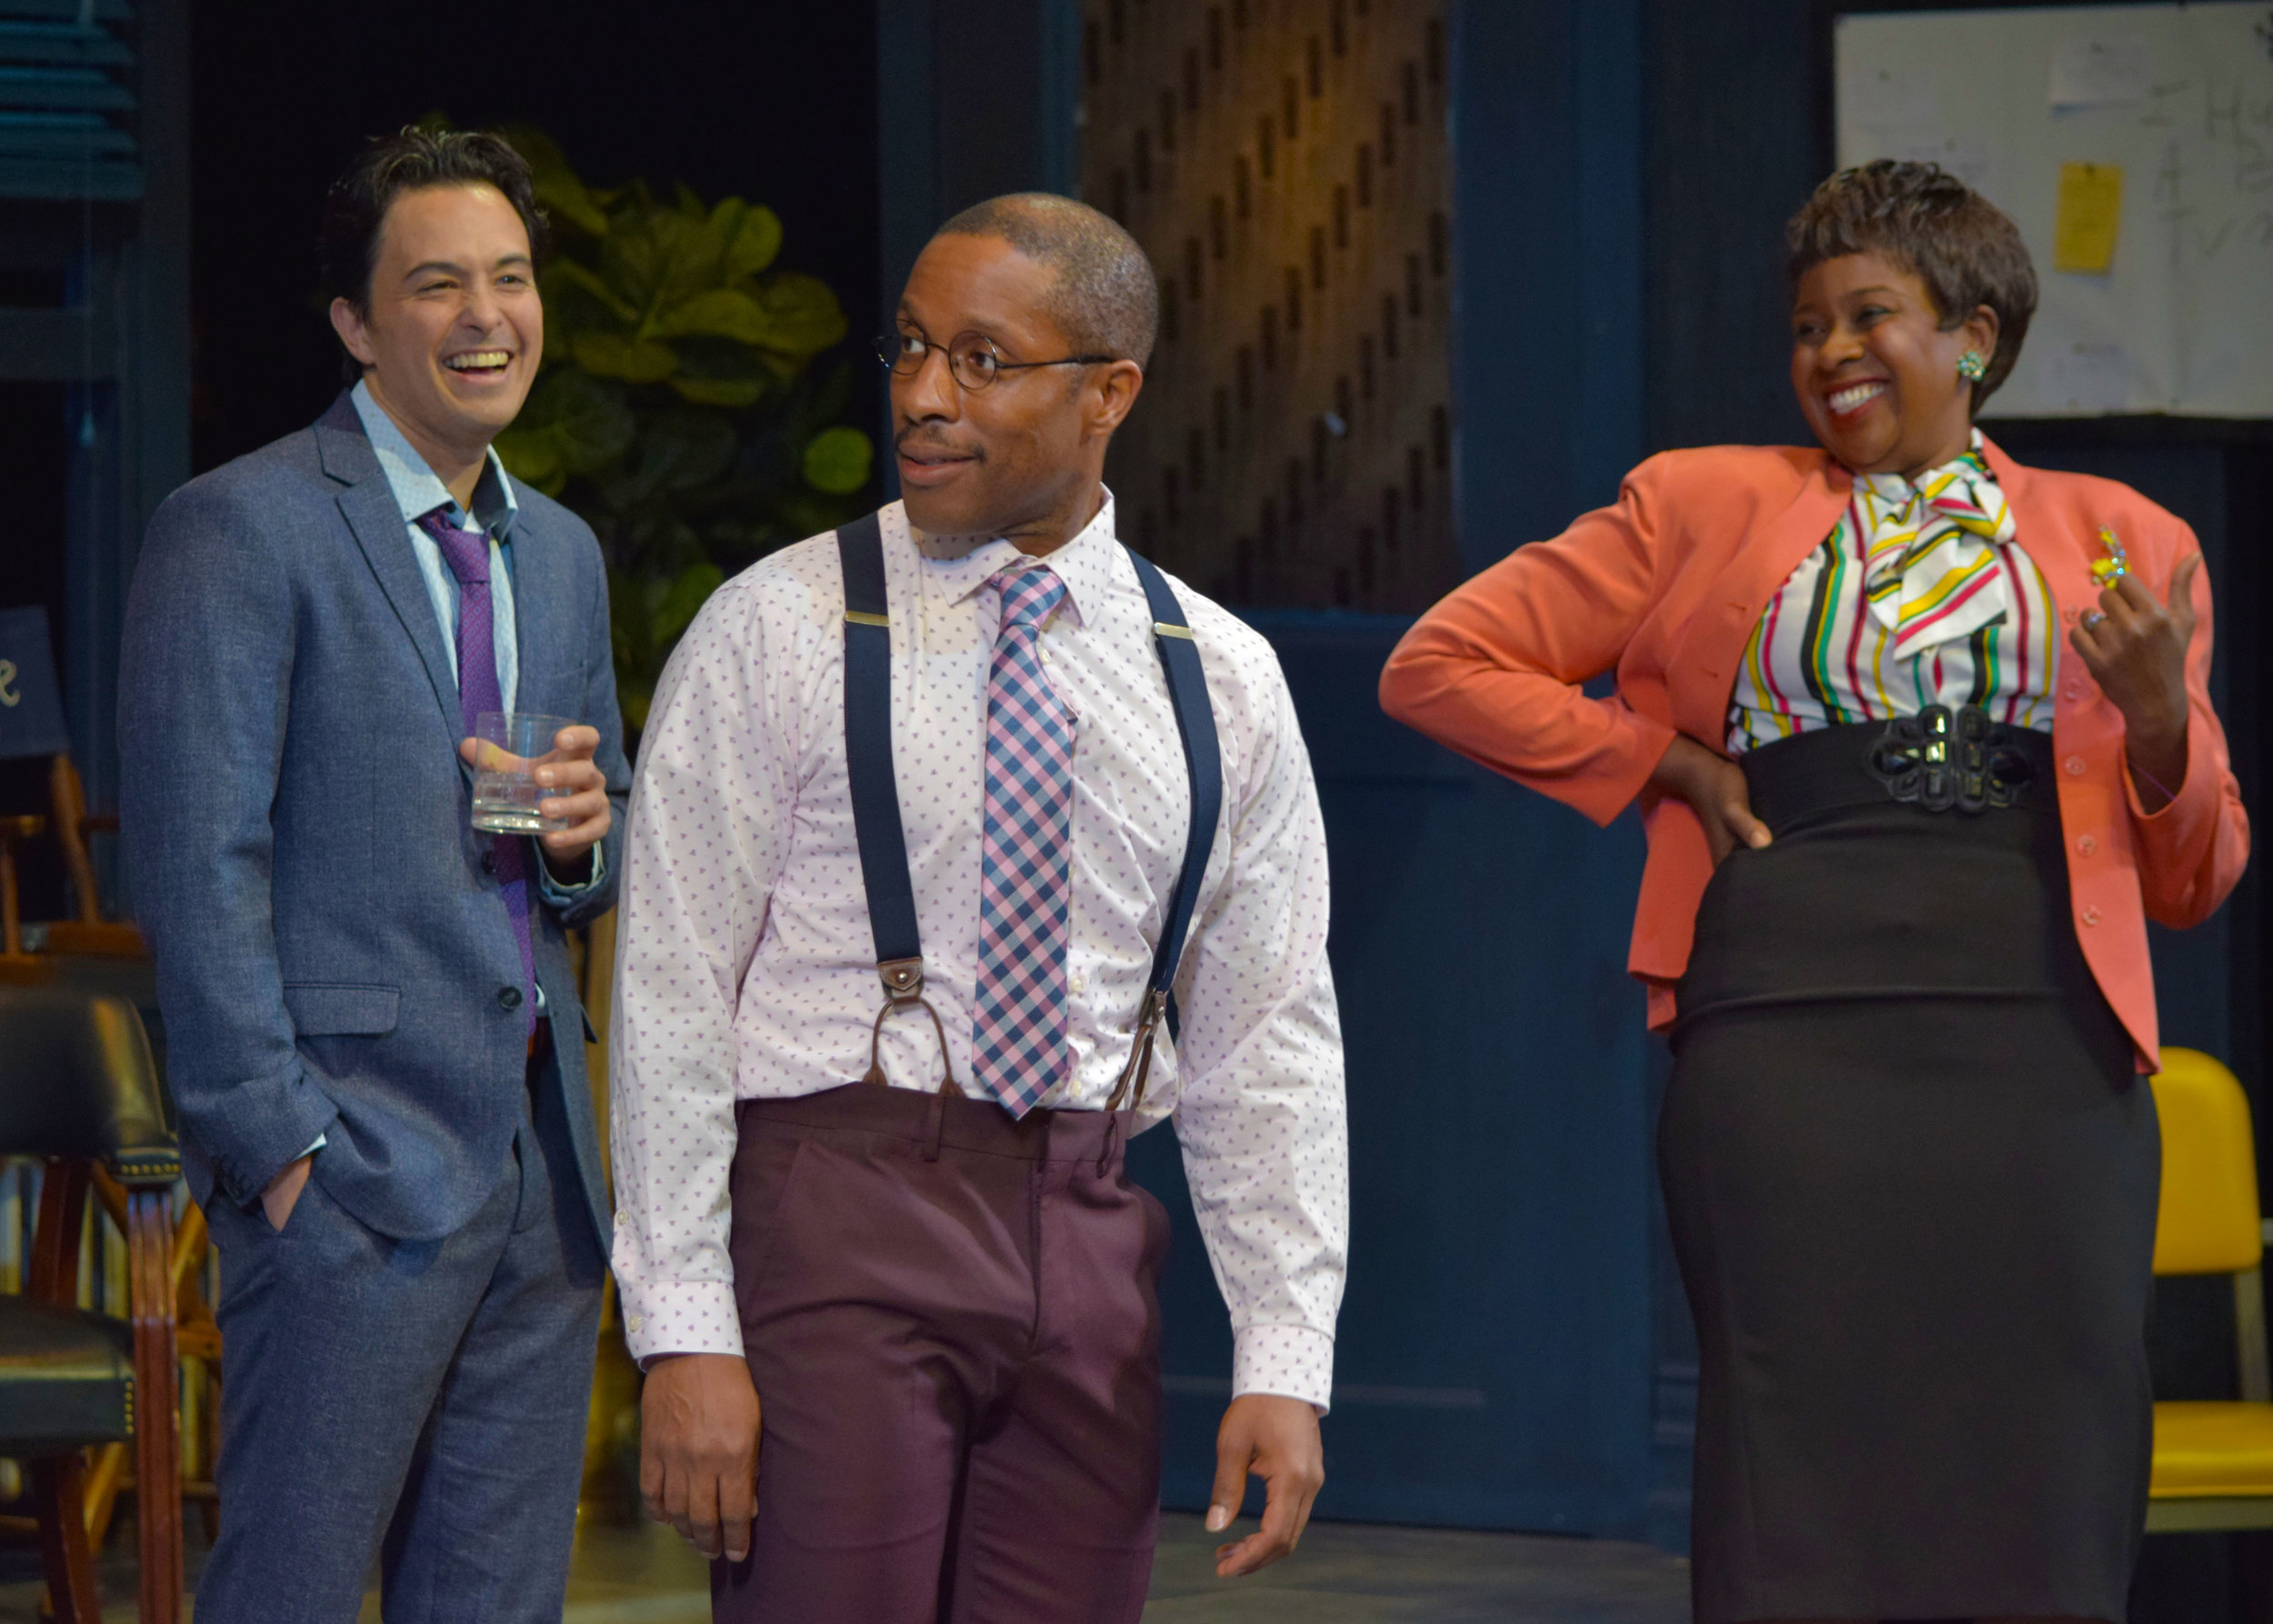 Lucas (Jason Grasl), Kenny (Cornelius Jones, Jr.), and Carol (LaNisa Renee Frederick) in Laughter on the 23rd Floor at the Garry Marshall Theatre.